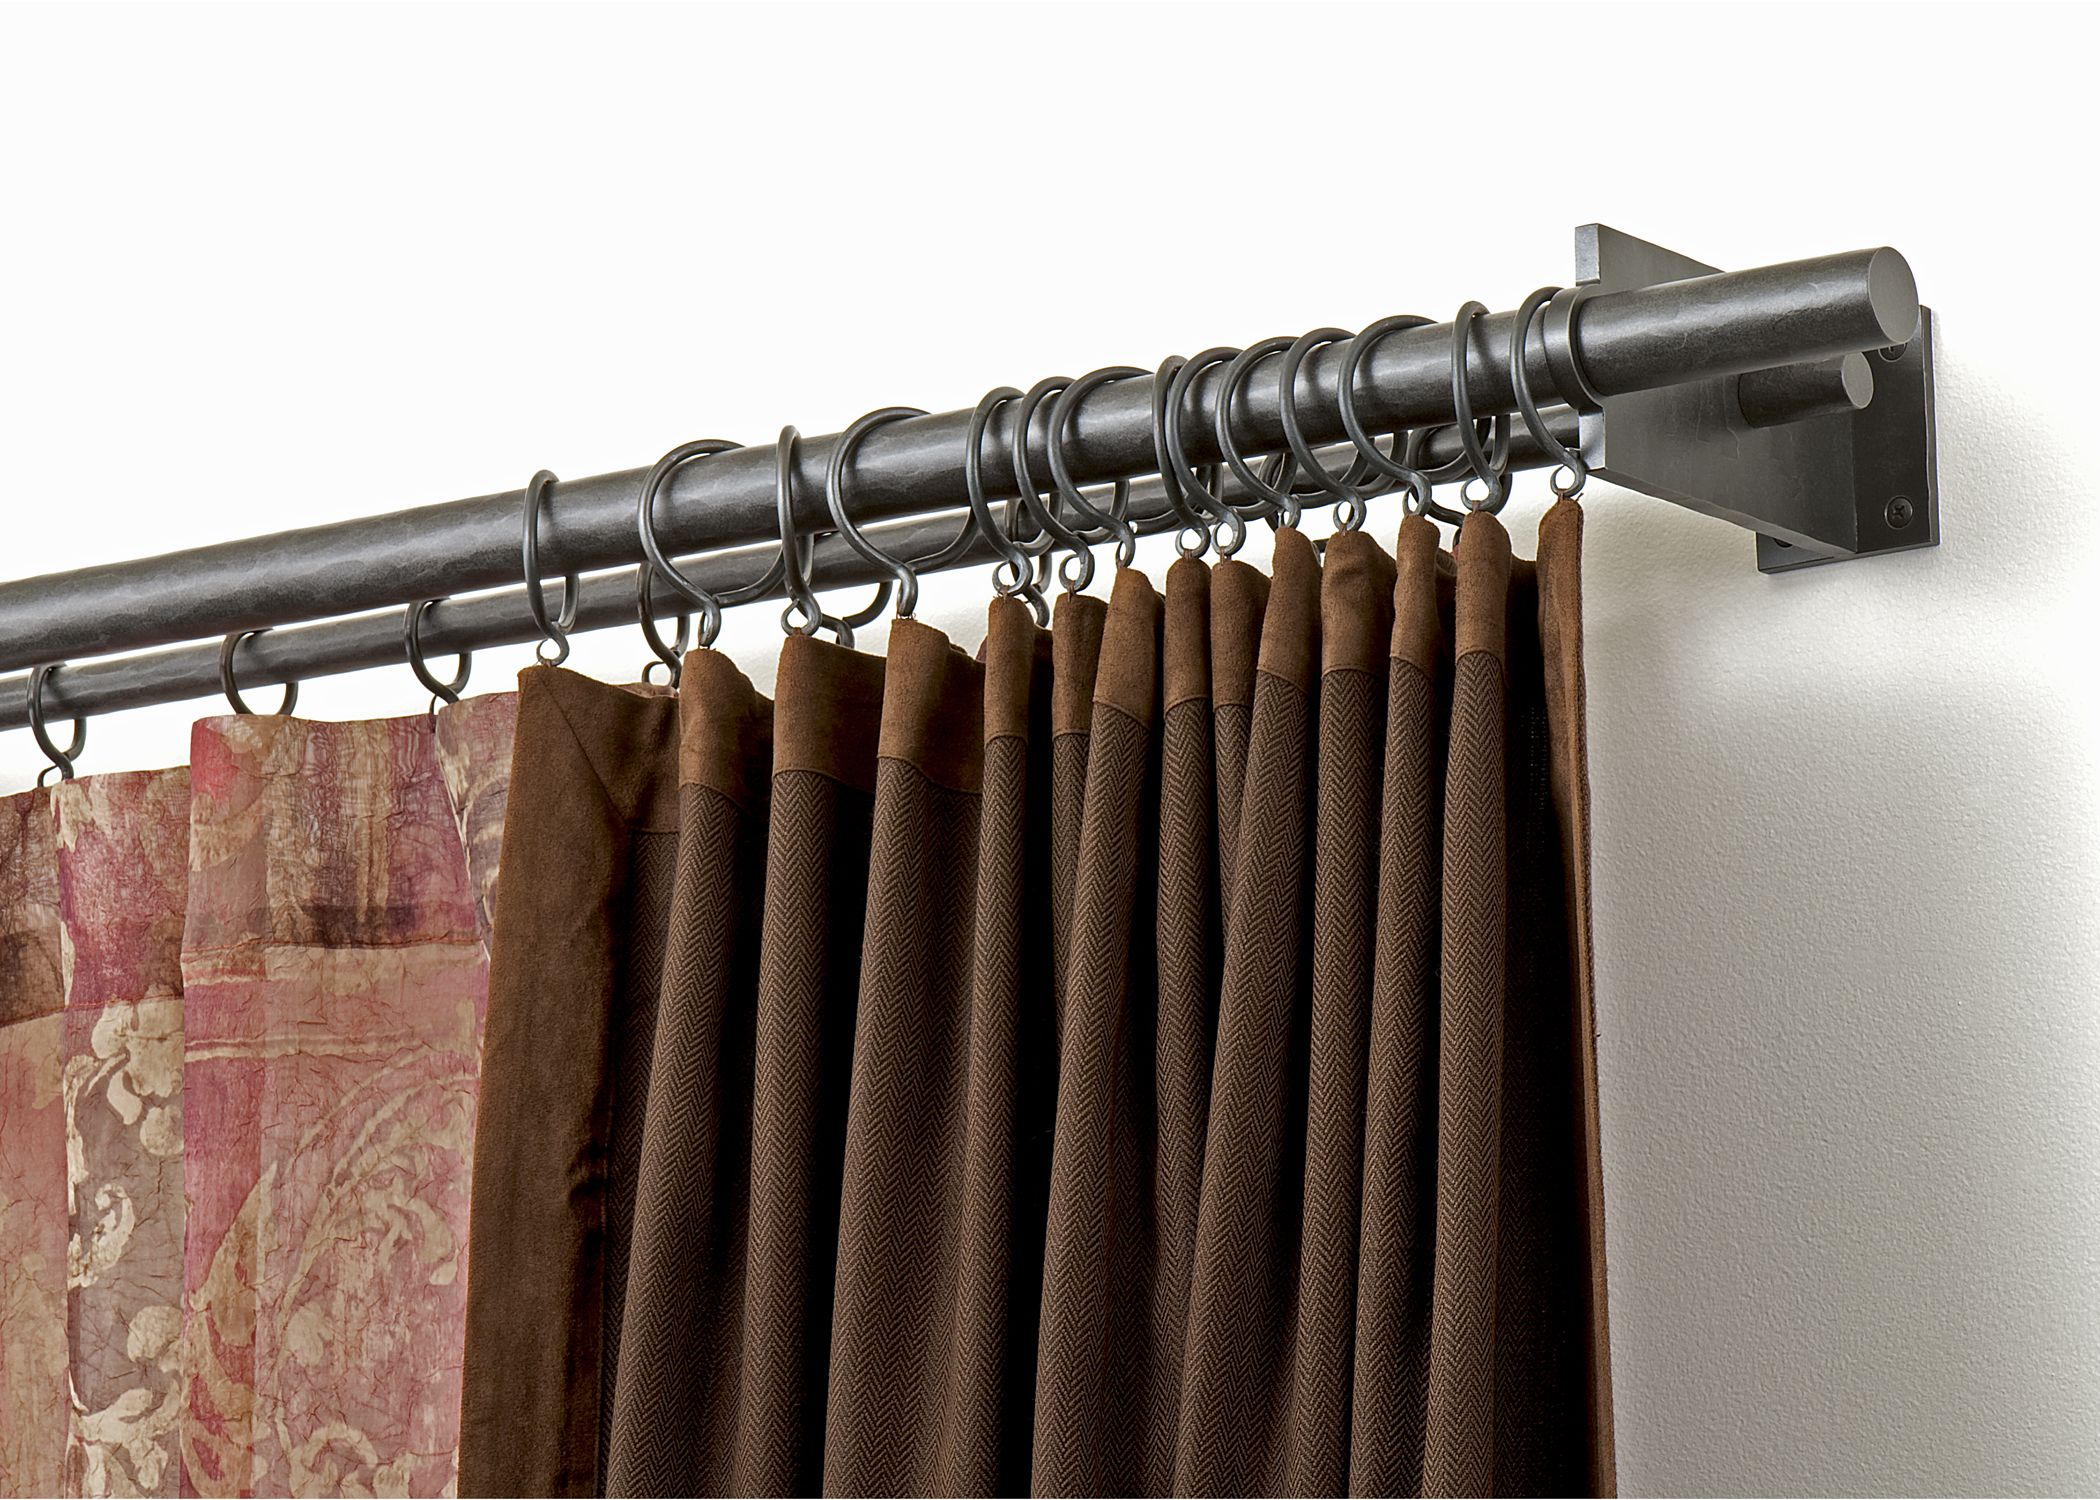 Nice Double Curtain Rod  For the Home  Pinterest  Double curtain rods Double curtains and